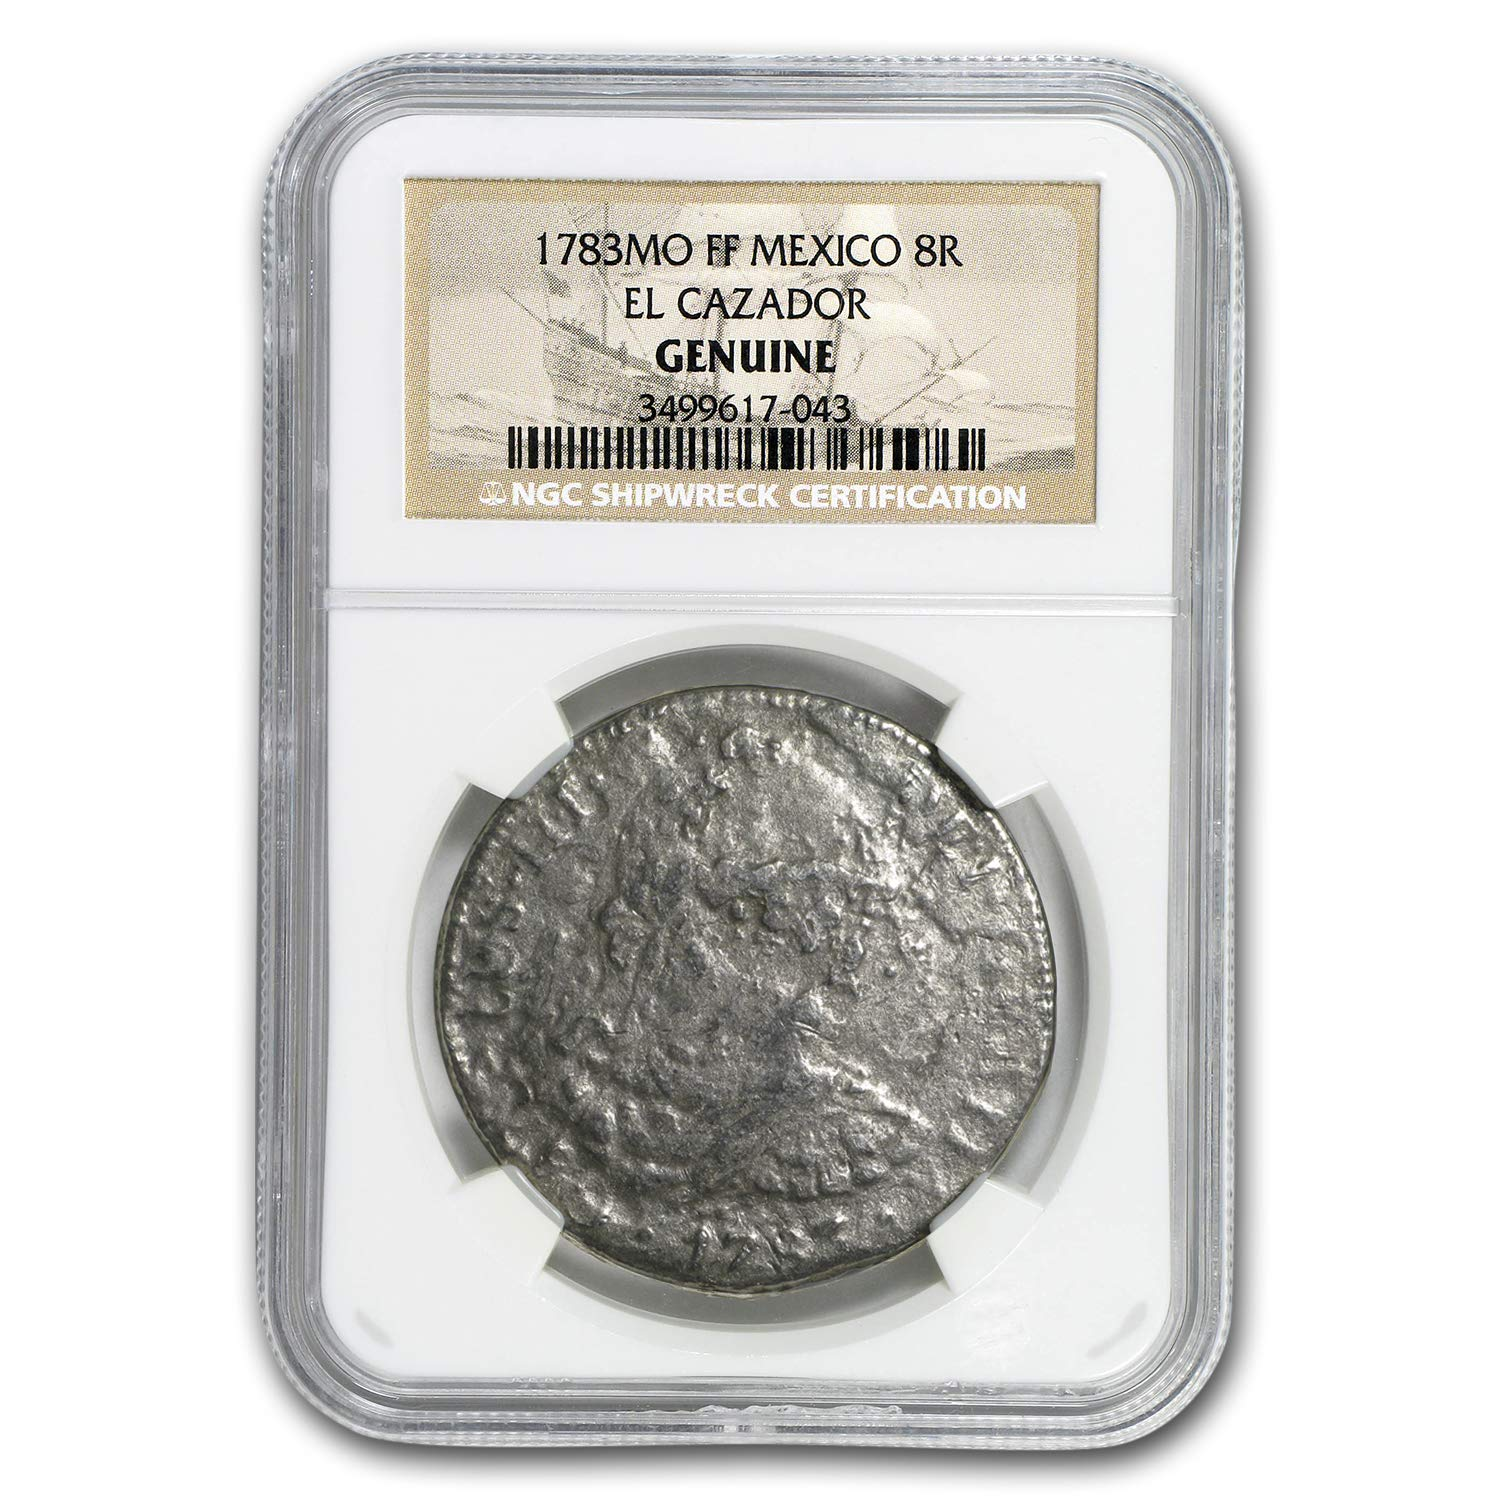 1783 MX FF Mexico Silver 8 Reales Shipwreck Coin NGC Very Good At Amazons Collectible Coins Store